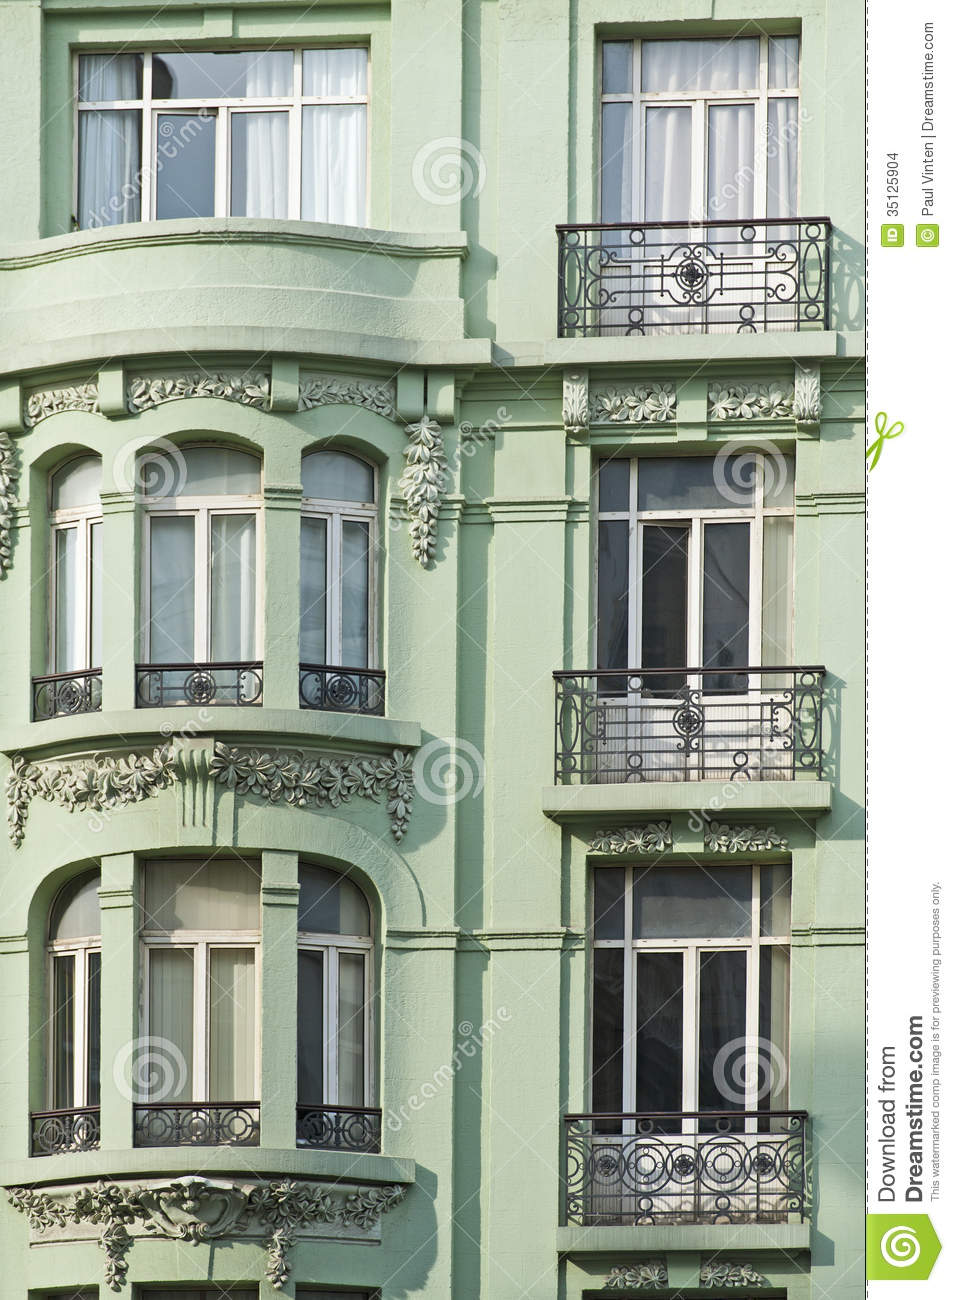 Exterior wall of an apartment building stock photo image for Center block house